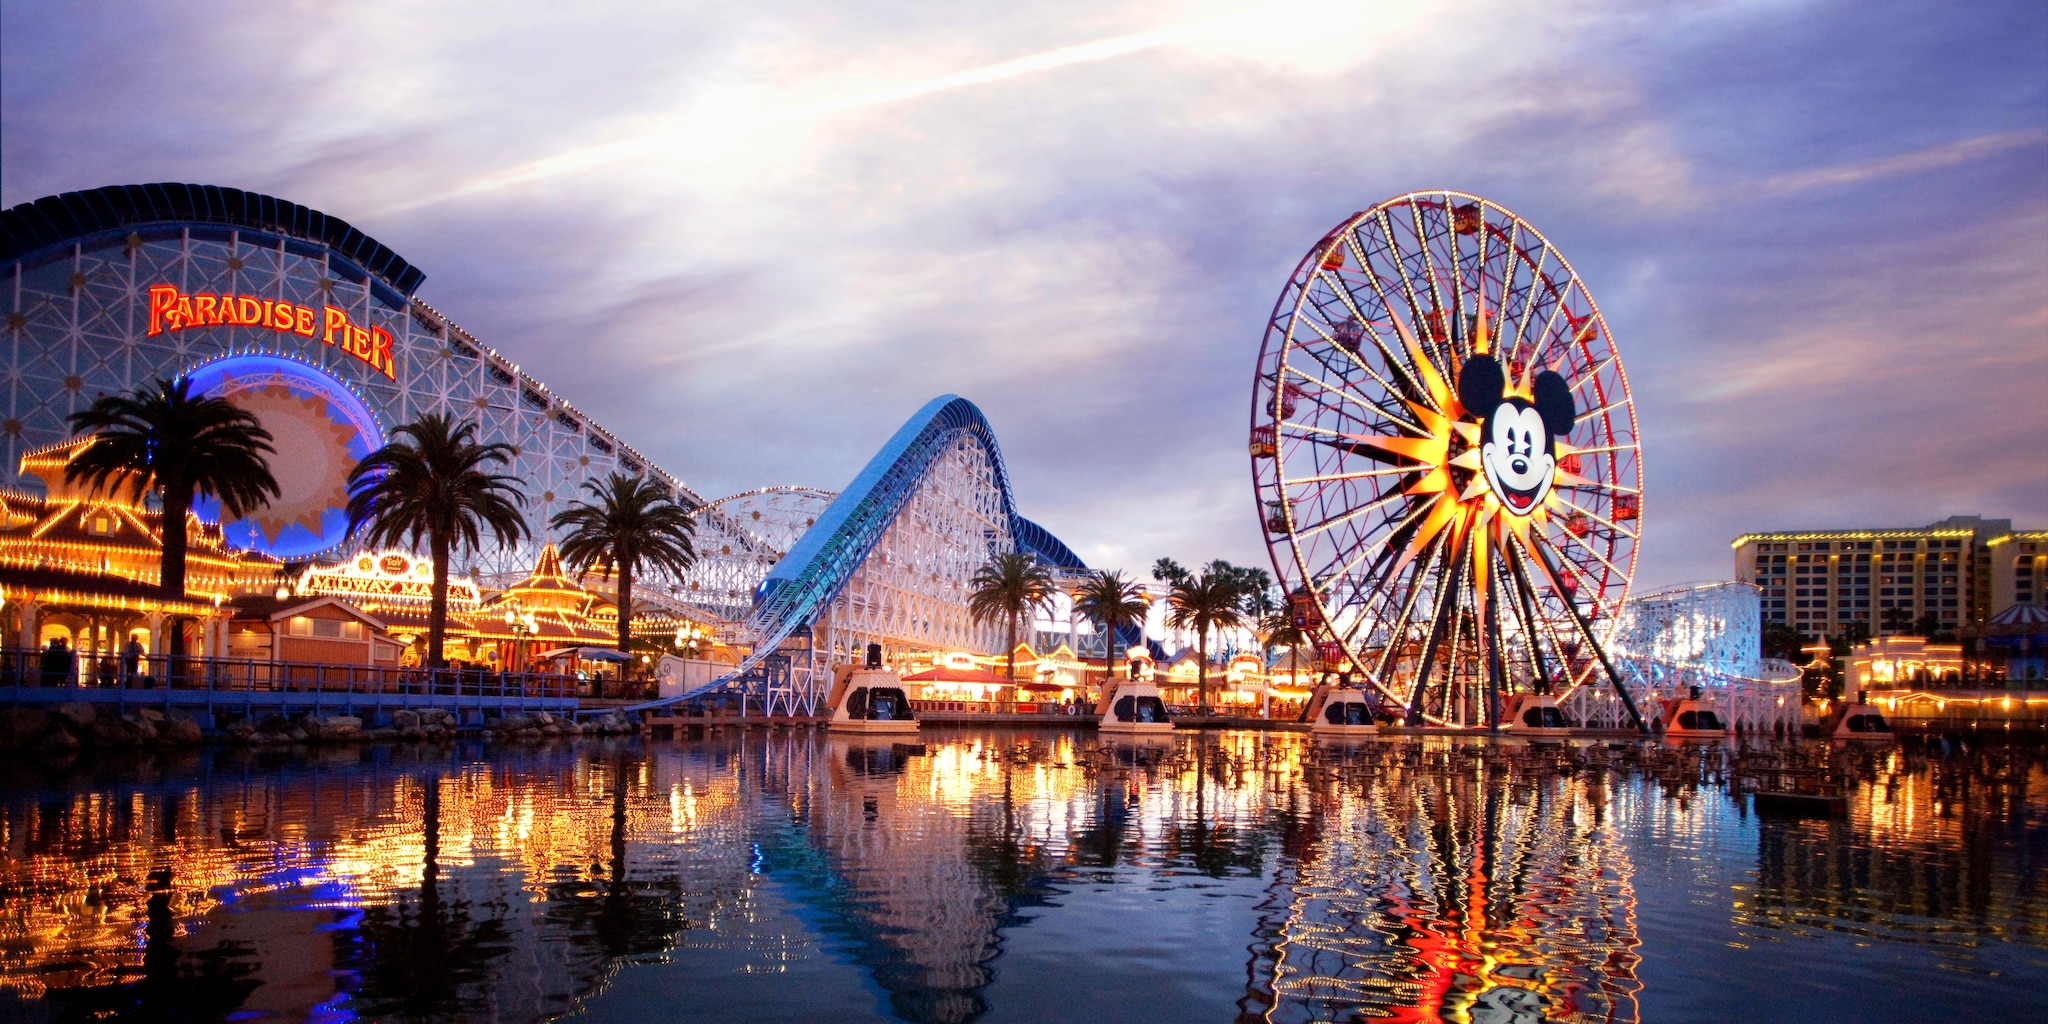 Twilight at Paradise Pier at Disney California Adventure Park